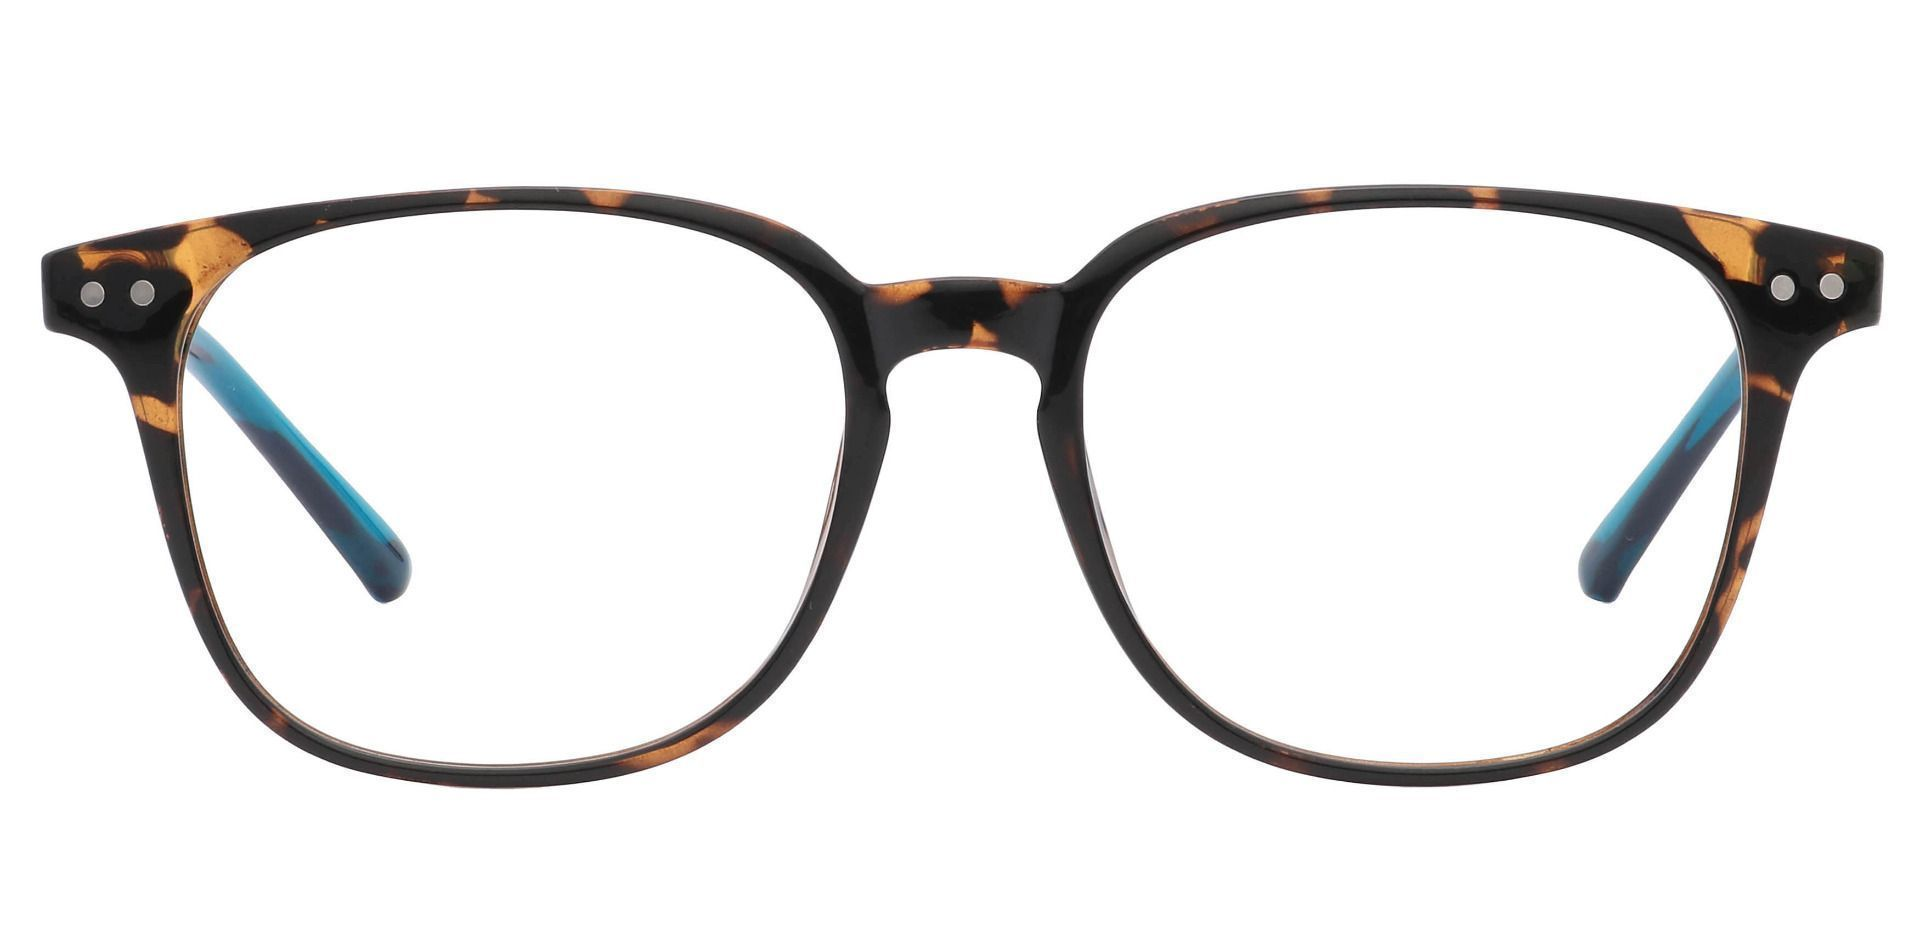 Ravine Oval Prescription Glasses - The Frame Is Tortoise And Blue